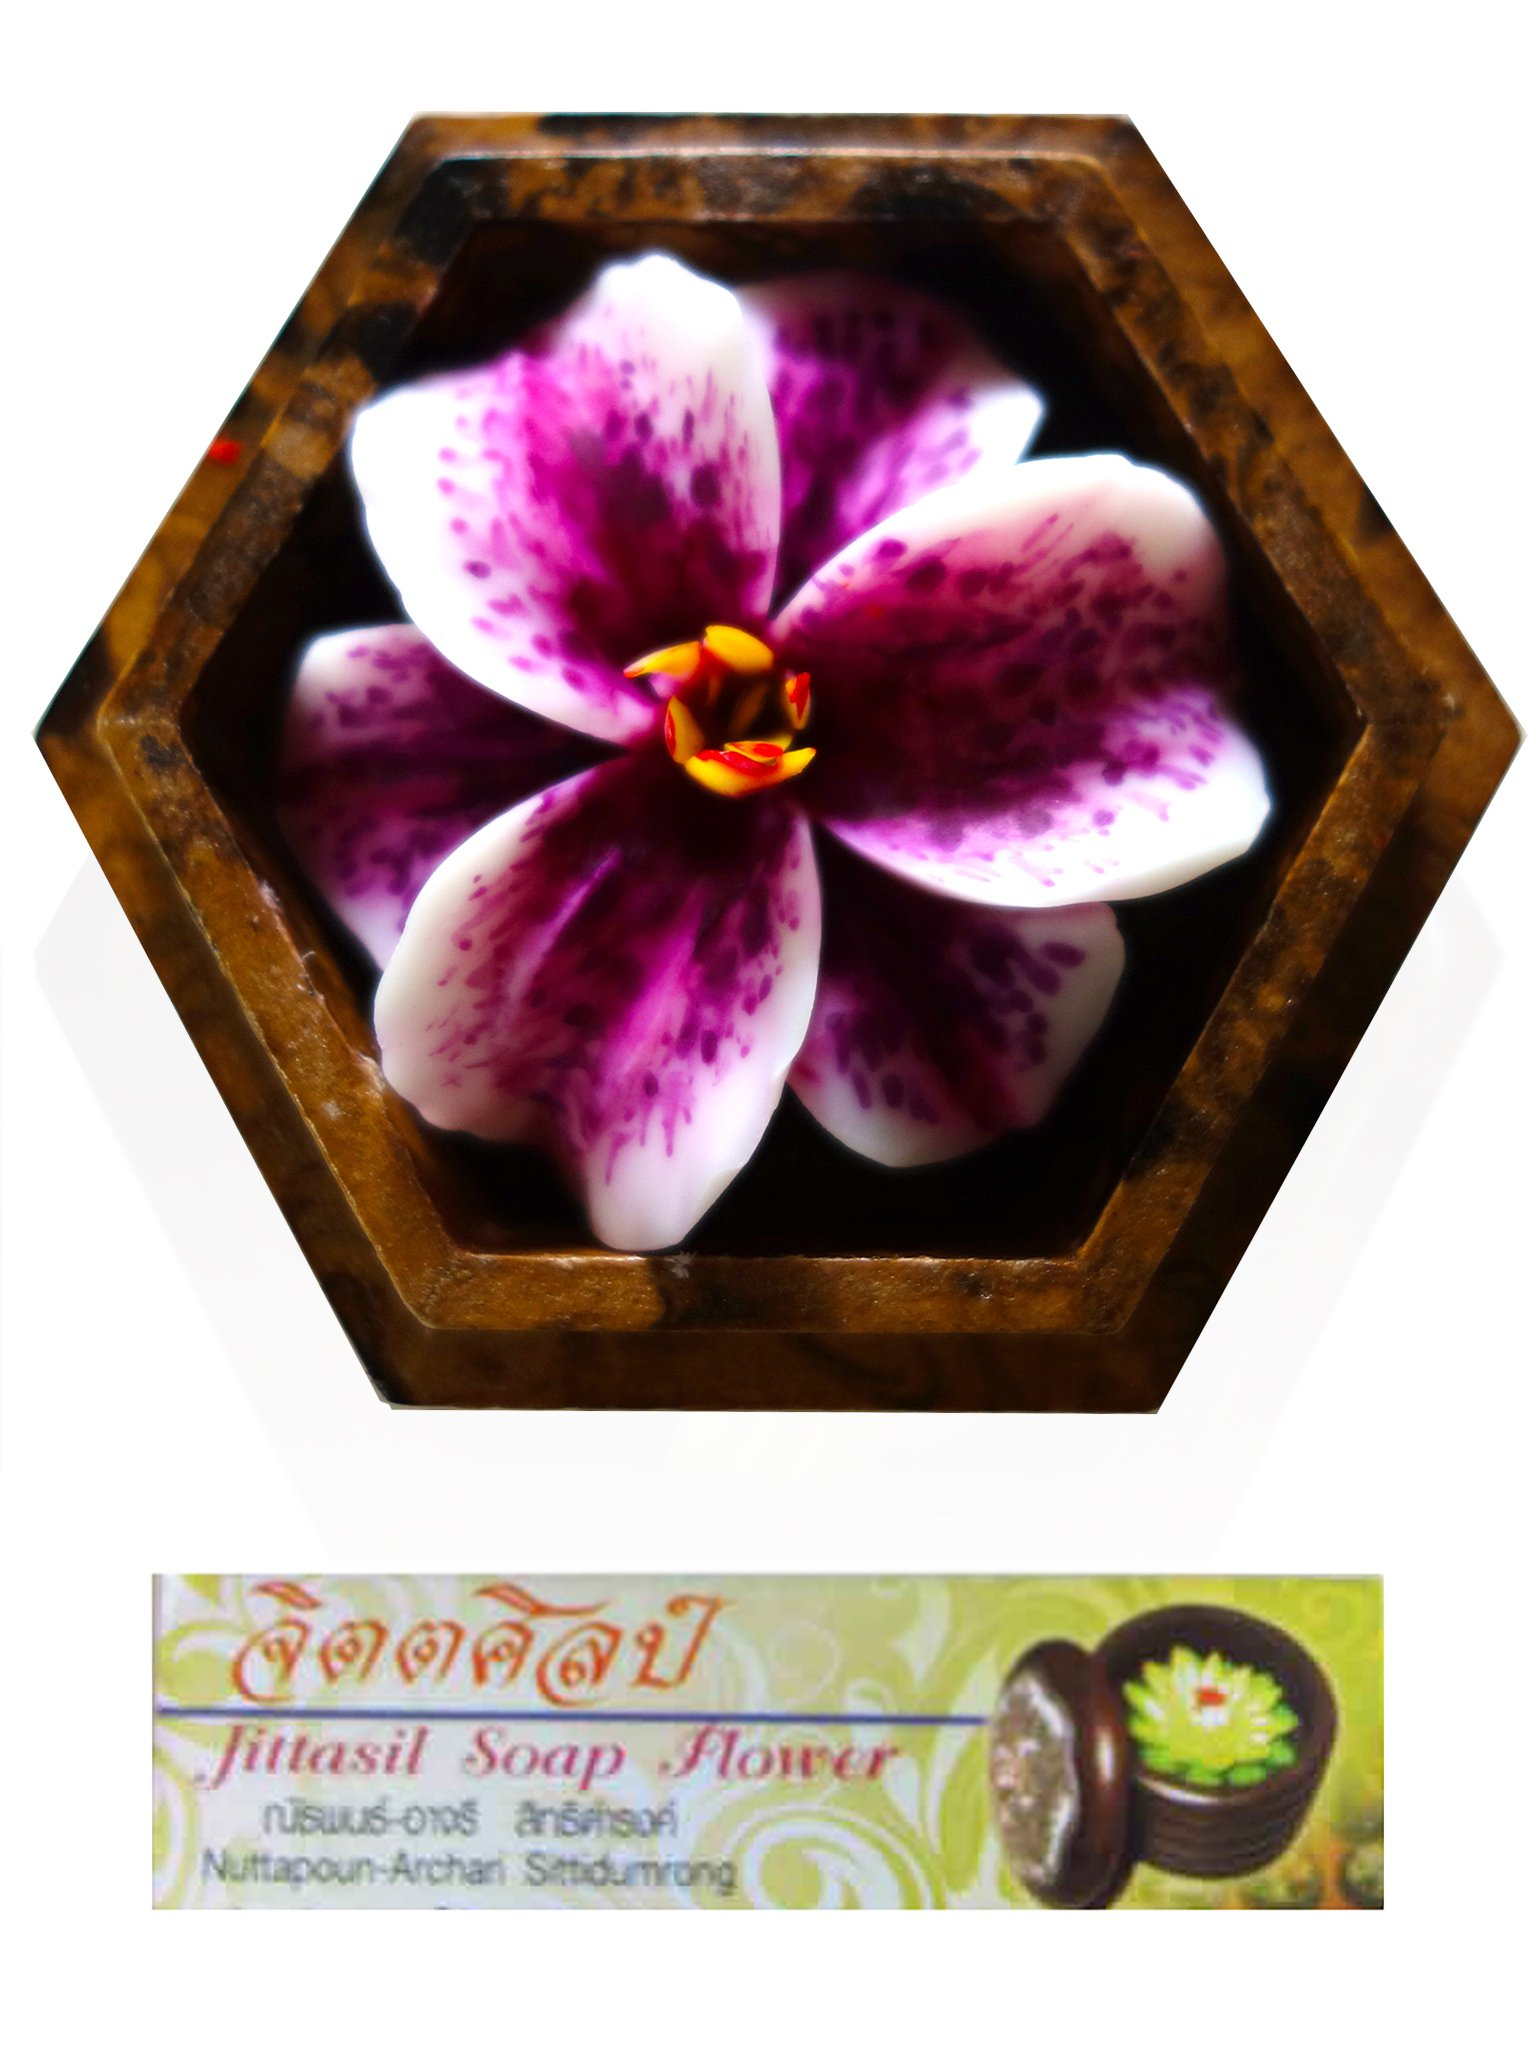 Jittasil Thai Hand-Carved Soap Flower, 4 Inch Scented Soap Carving Gift-Set, Purple Lily In Decorative Hexagonal Pine Wood Case by Jittasil Hand-Carved Soap